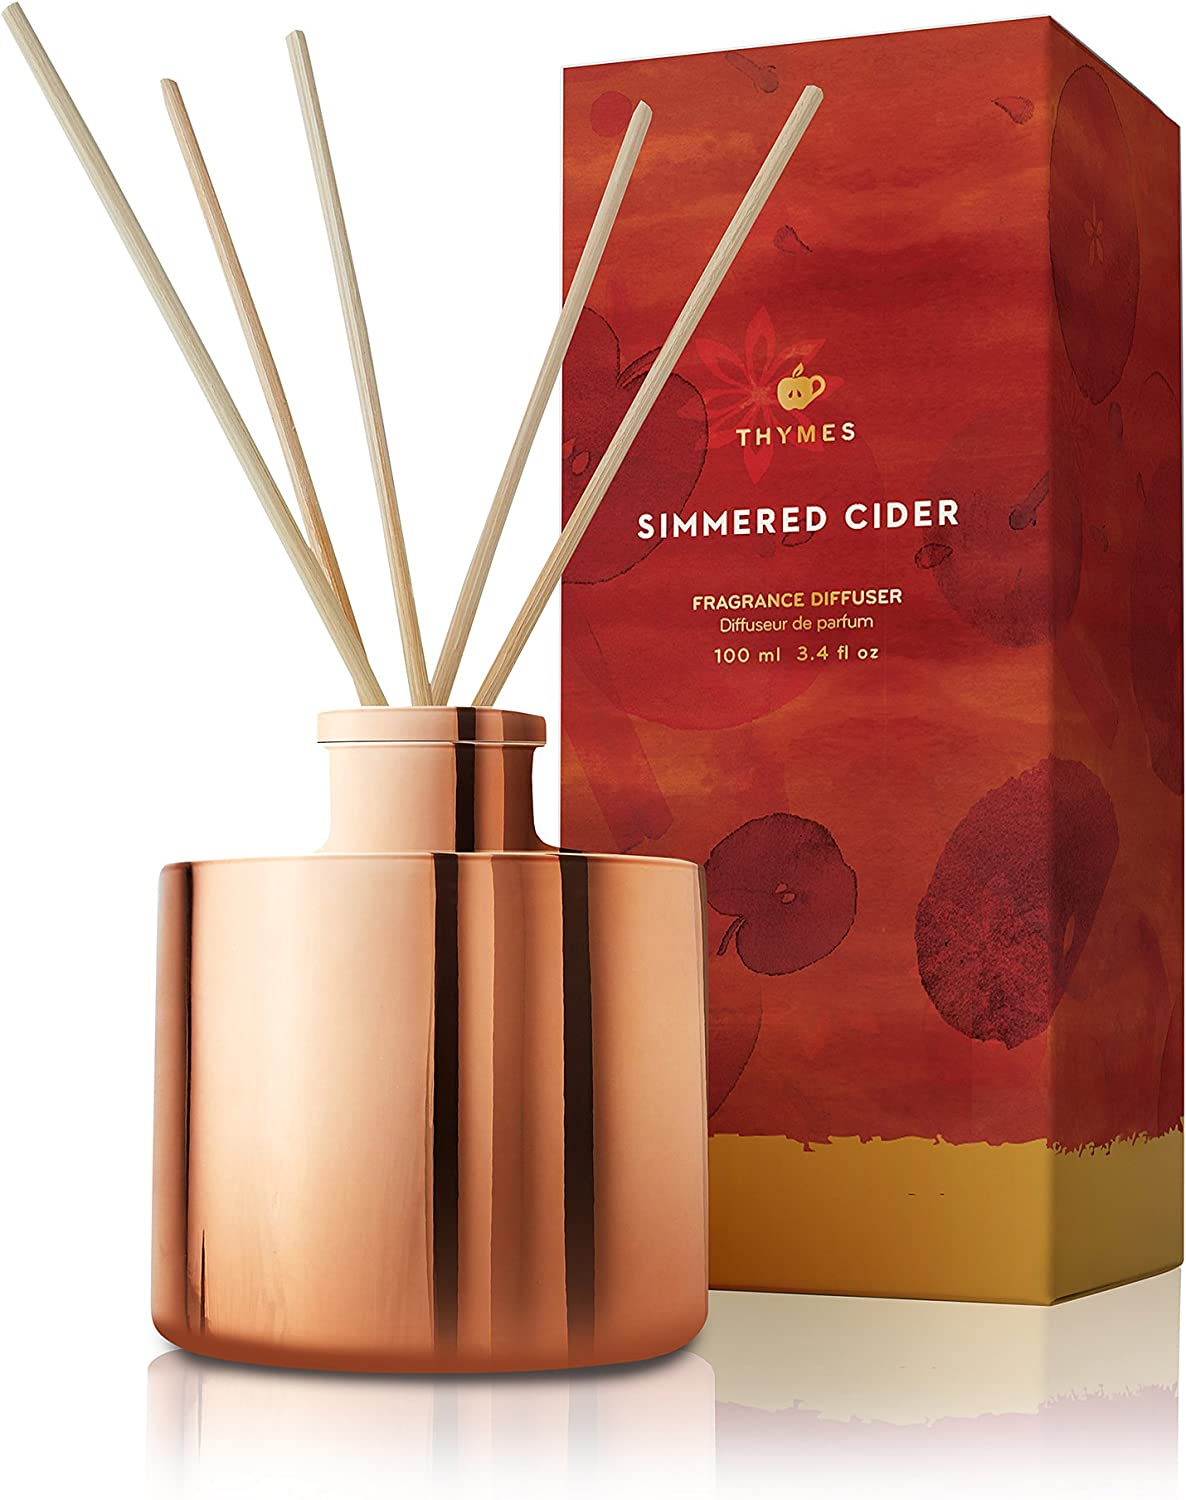 Thymes - Simmered Cider Reed Diffuser Petite 4oz